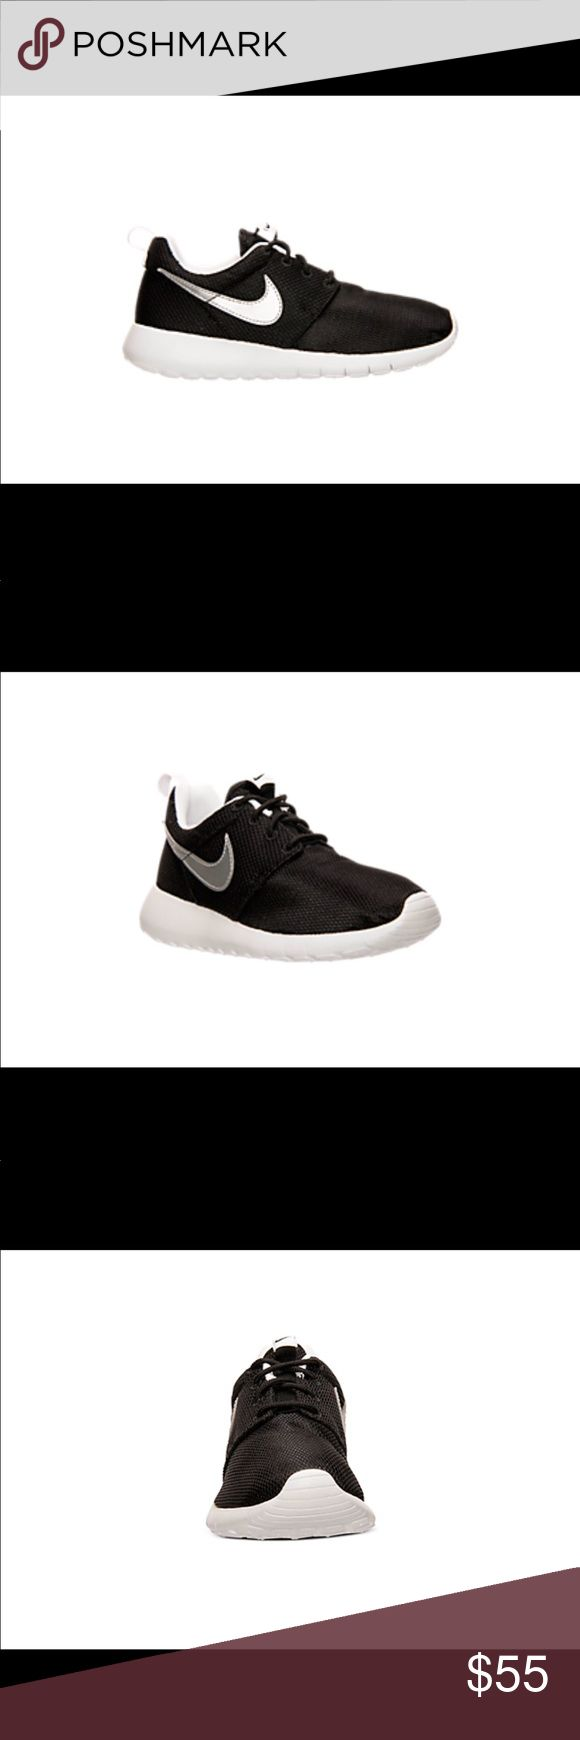 Brand new Nike shoes in box. Never been worn. Grade school Nike Roshe One casual shoes. They say boys but they could be for boys or girls. (I bought another pair for my daughter and she loves them! I posted a pic of her shoes for reference) Nike Shoes Sneakers